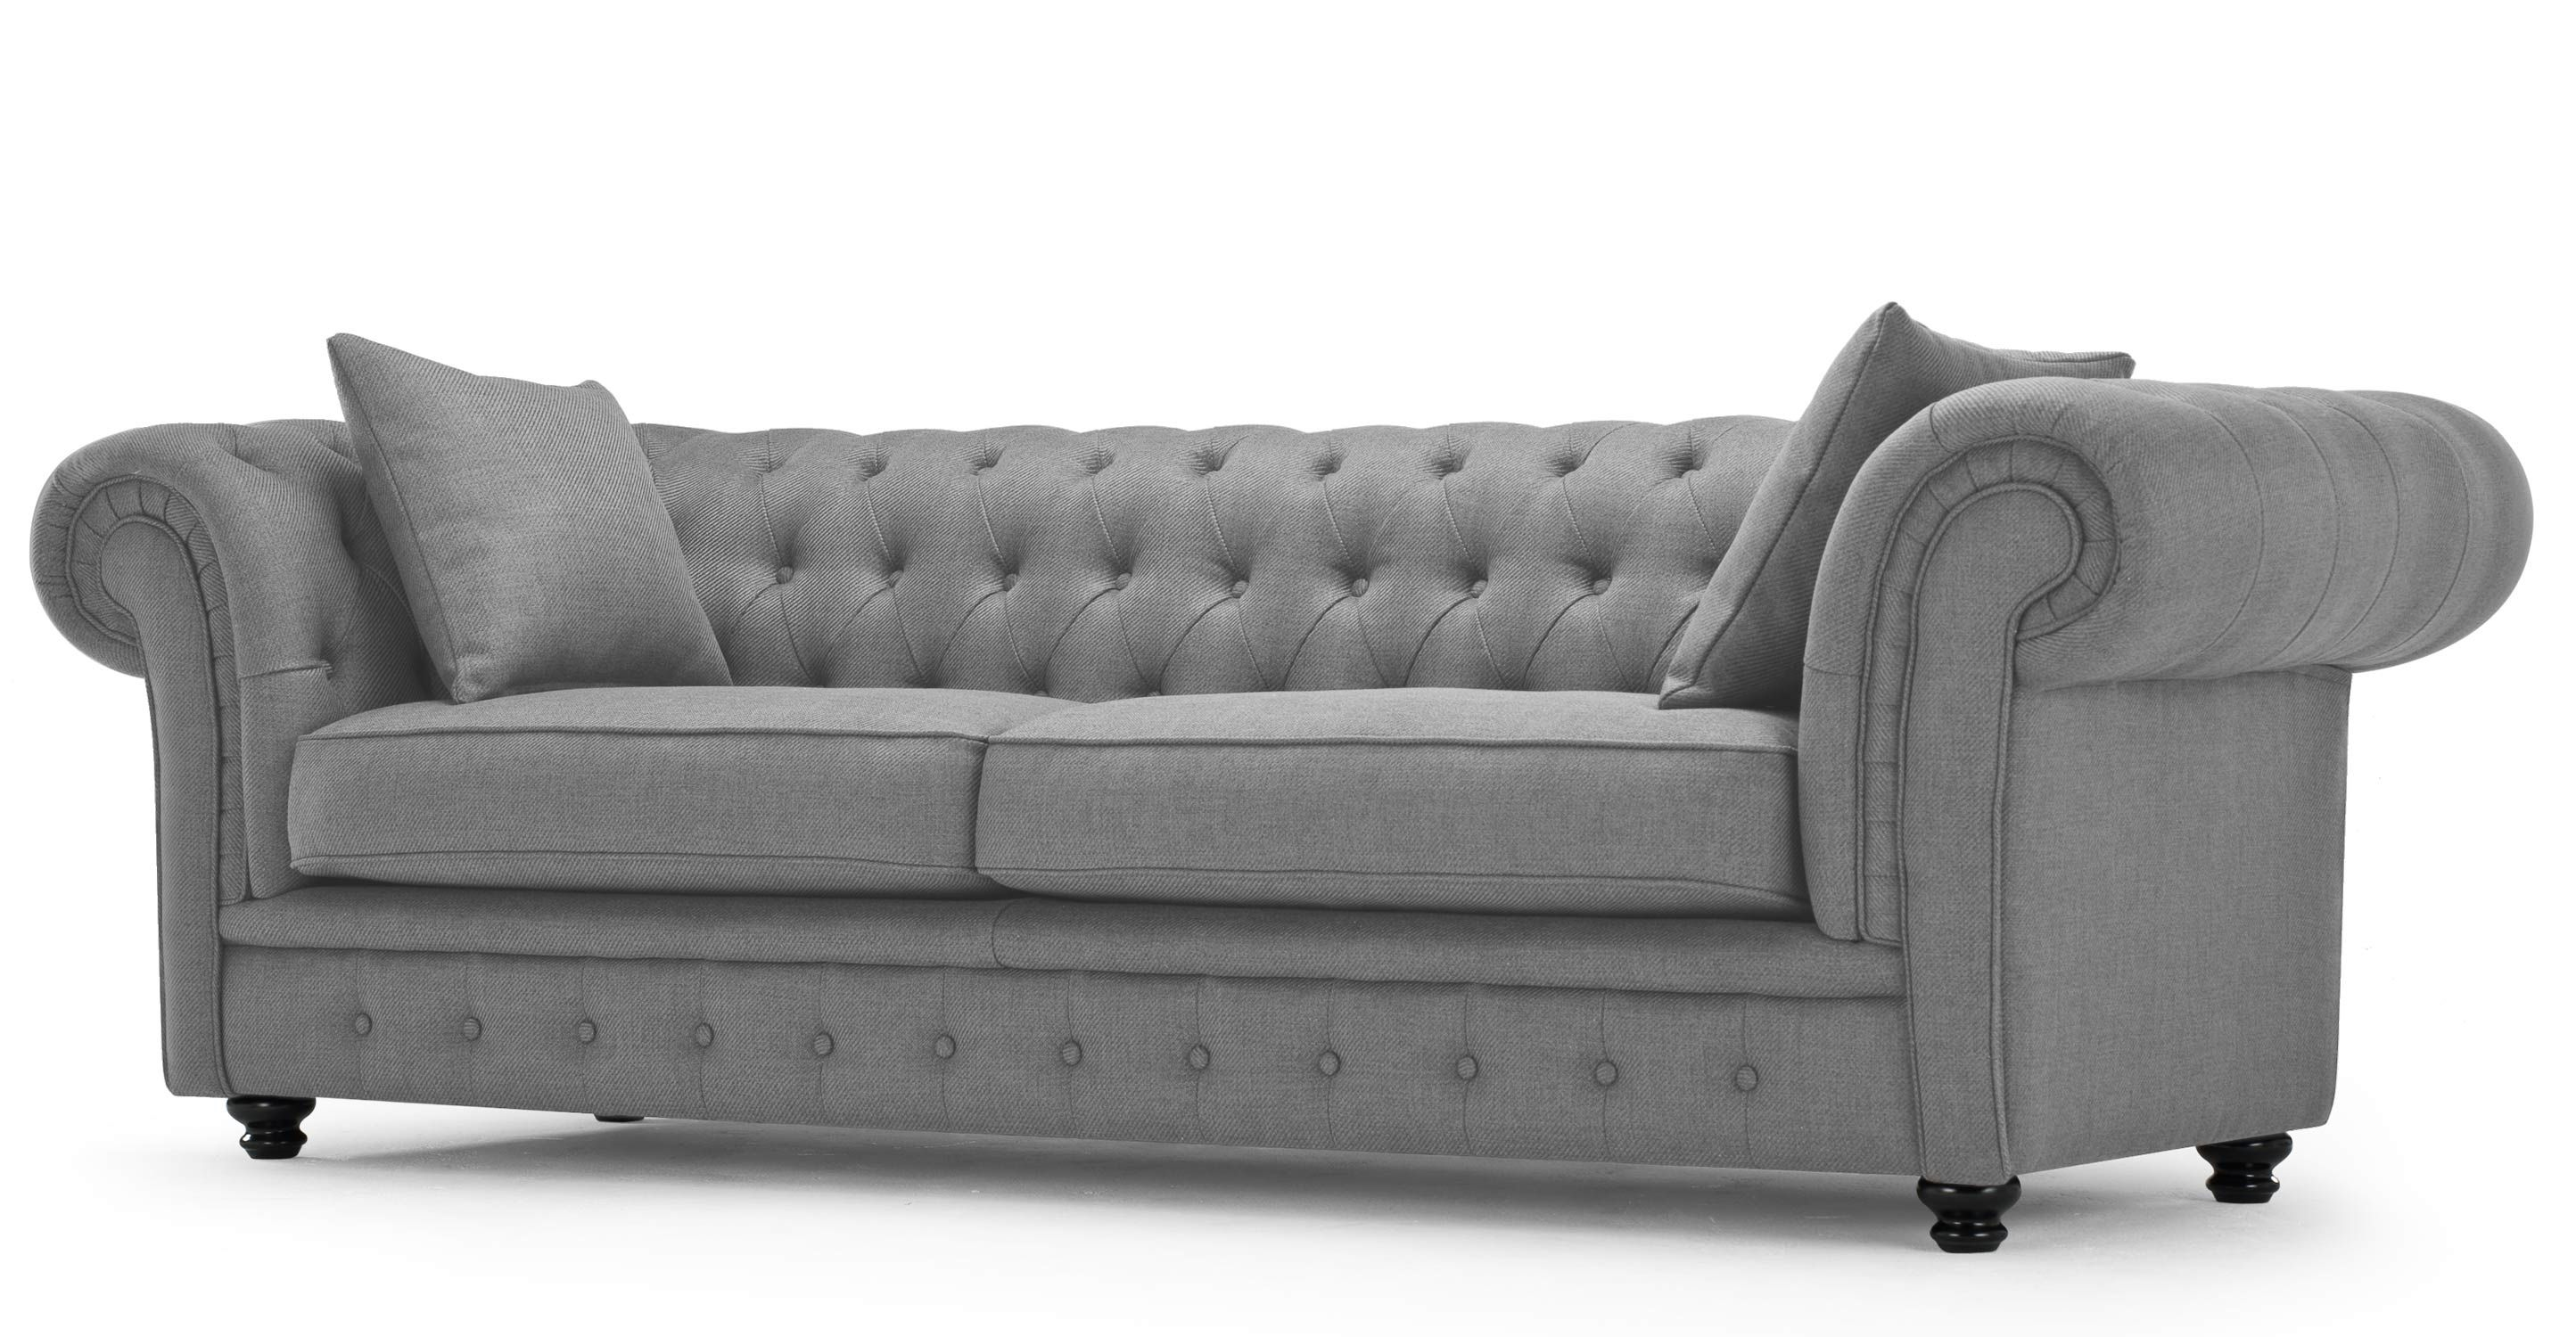 Awesome Sofa Vs Couch Perfect Sofa Vs Couch 53 With Additional